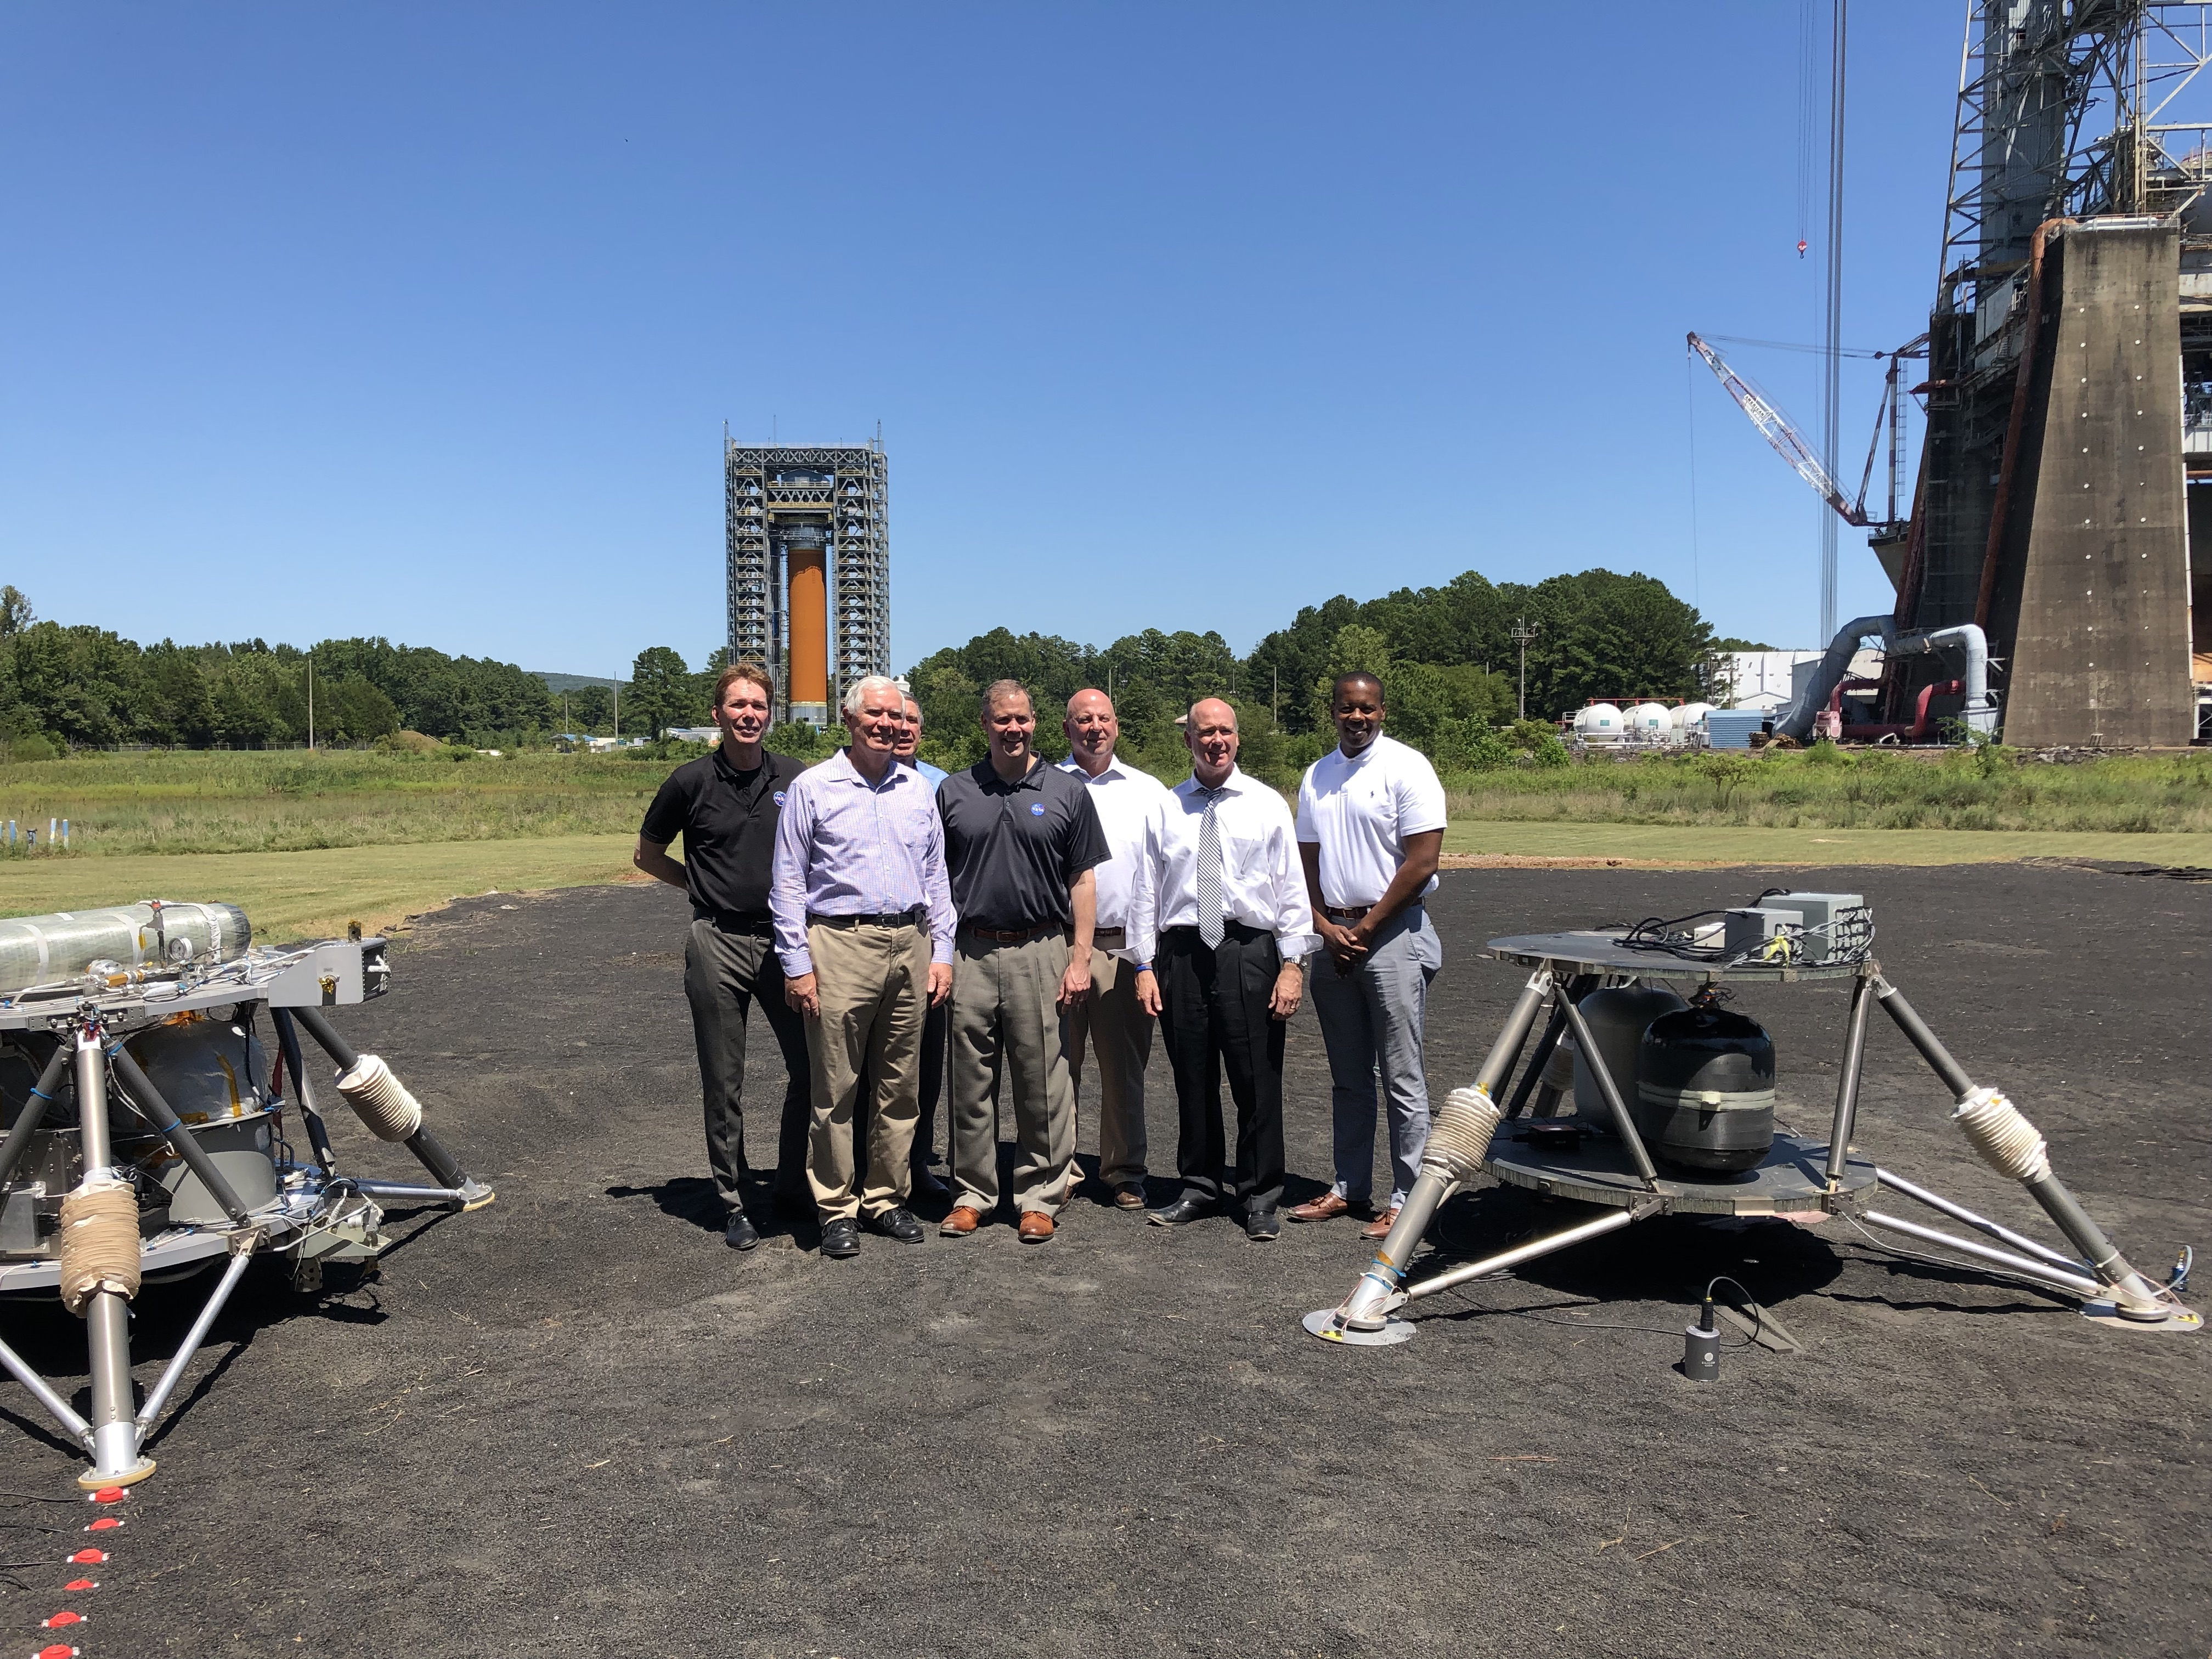 NASA Administrator Jim Bridenstine, Rep. Mo Brooks, Rep. Robert Aderholt, Rep. Scott DesJarlais, and others at the lunar regolith testbed.